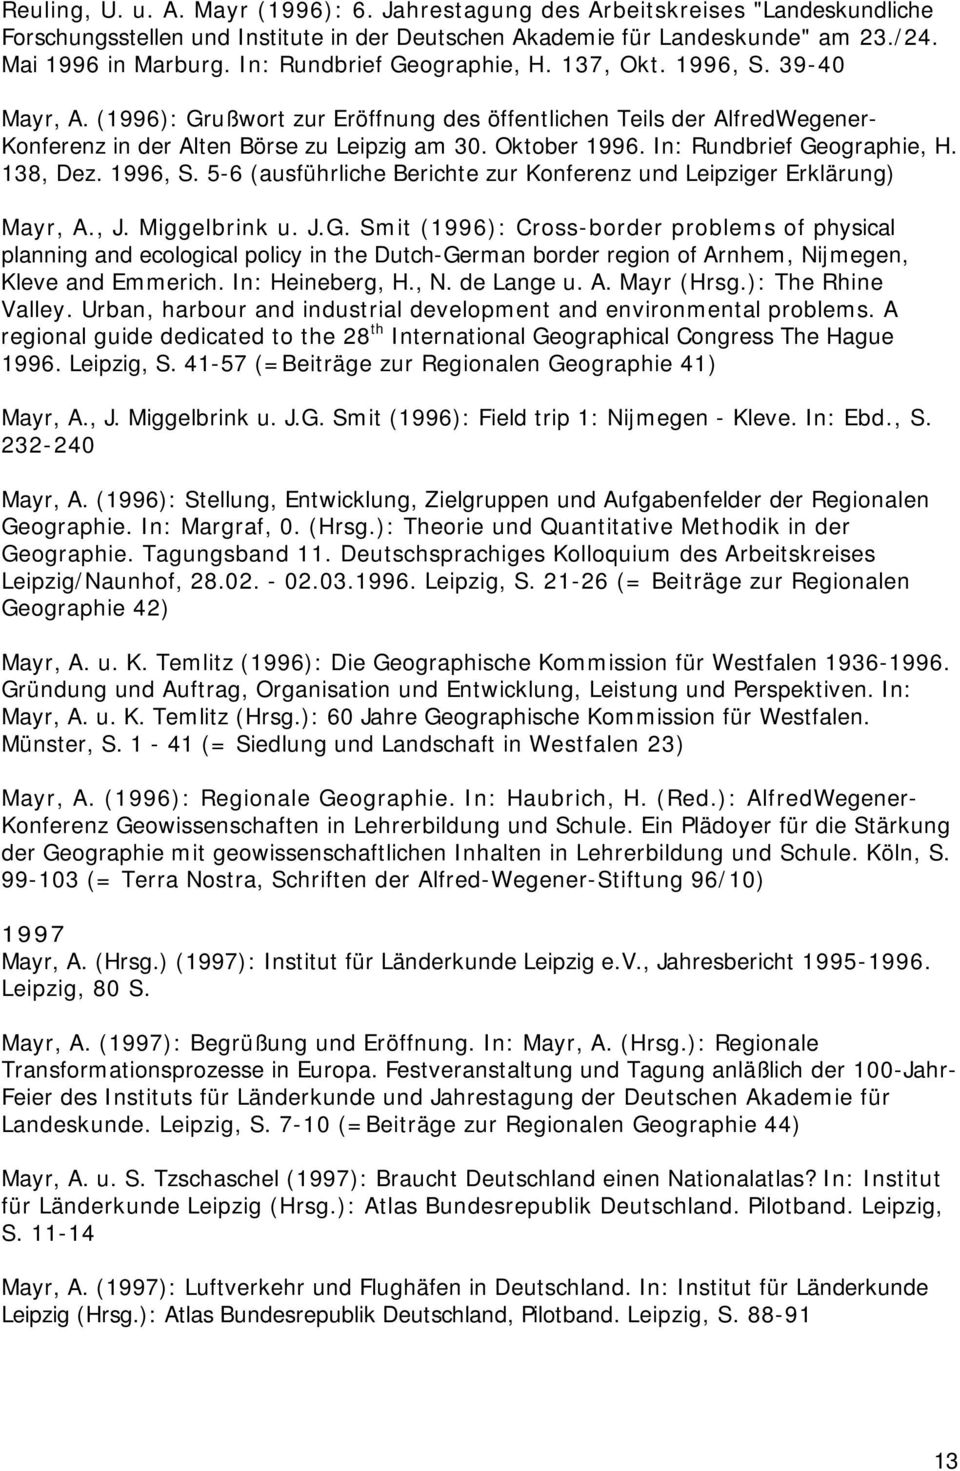 In: Rundbrief Geographie, H. 138, Dez. 1996, S. 5-6 (ausführliche Berichte zur Konferenz und Leipziger Erklärung) Mayr, A., J. Miggelbrink u. J.G. Smit (1996): Cross-border problems of physical planning and ecological policy in the Dutch-German border region of Arnhem, Nijmegen, Kleve and Emmerich.